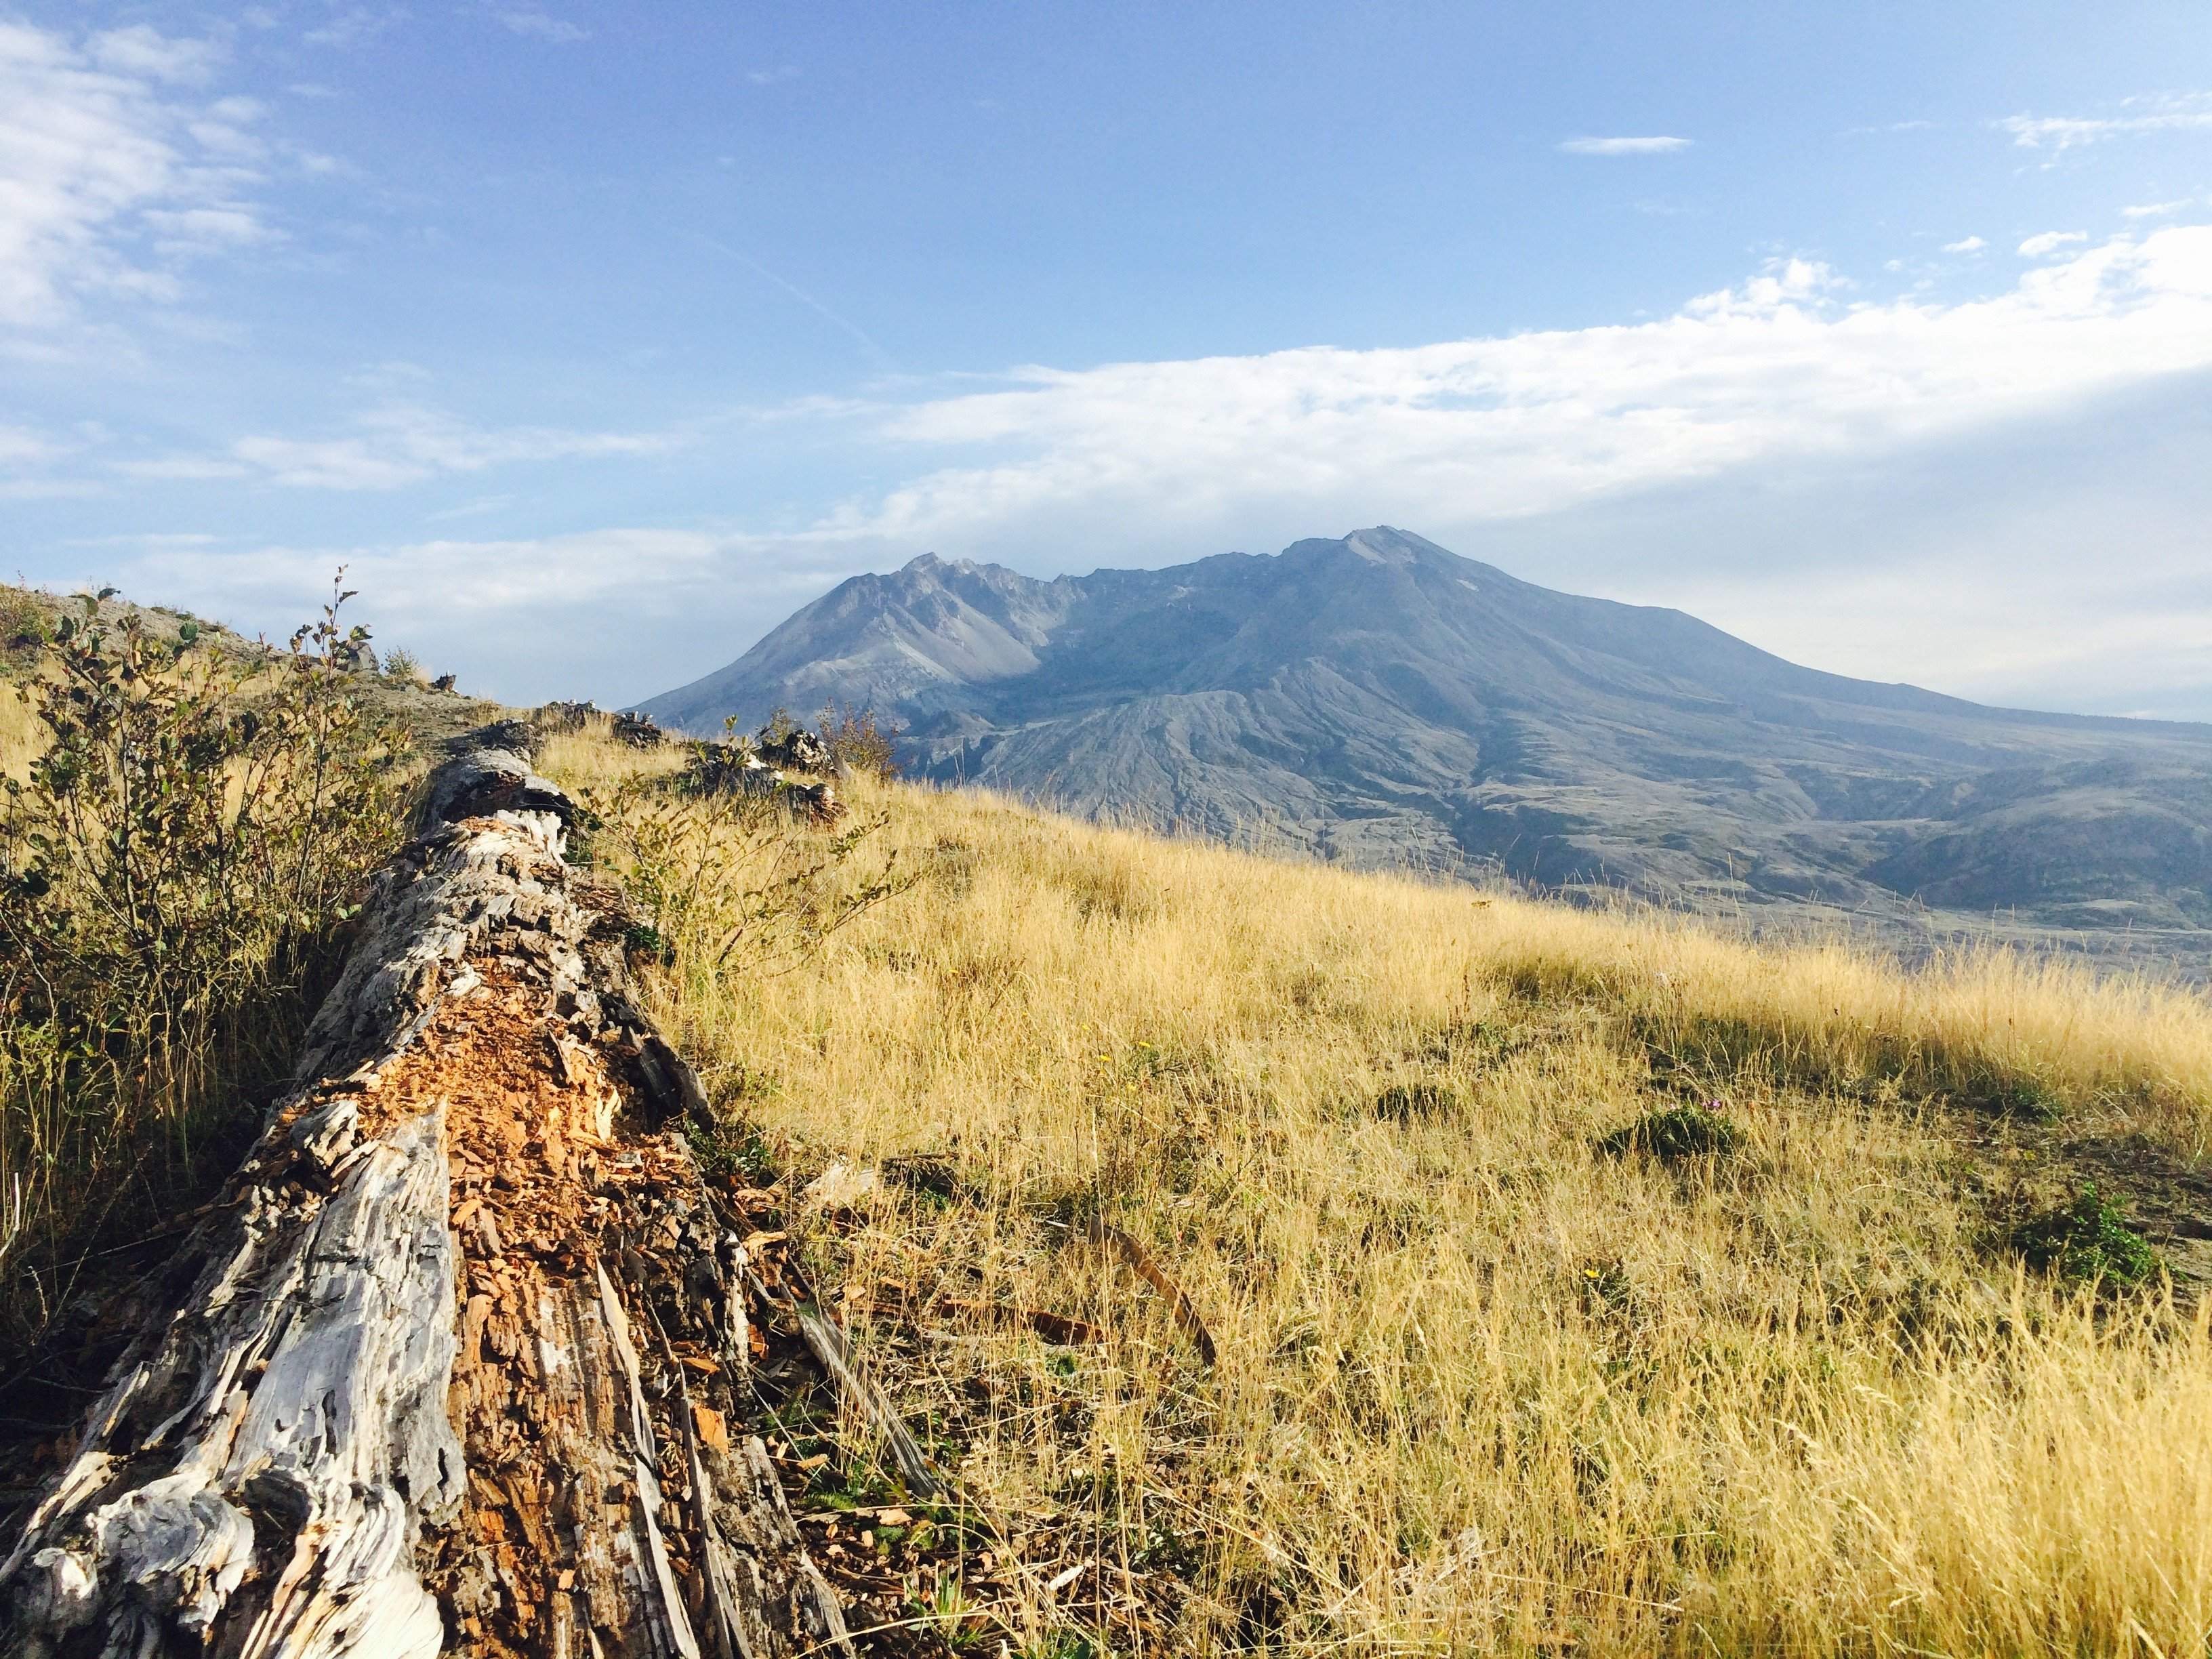 Shattered Log Leading to the Force That Broke It Years Ago Mt St Helens Washington wallpaper